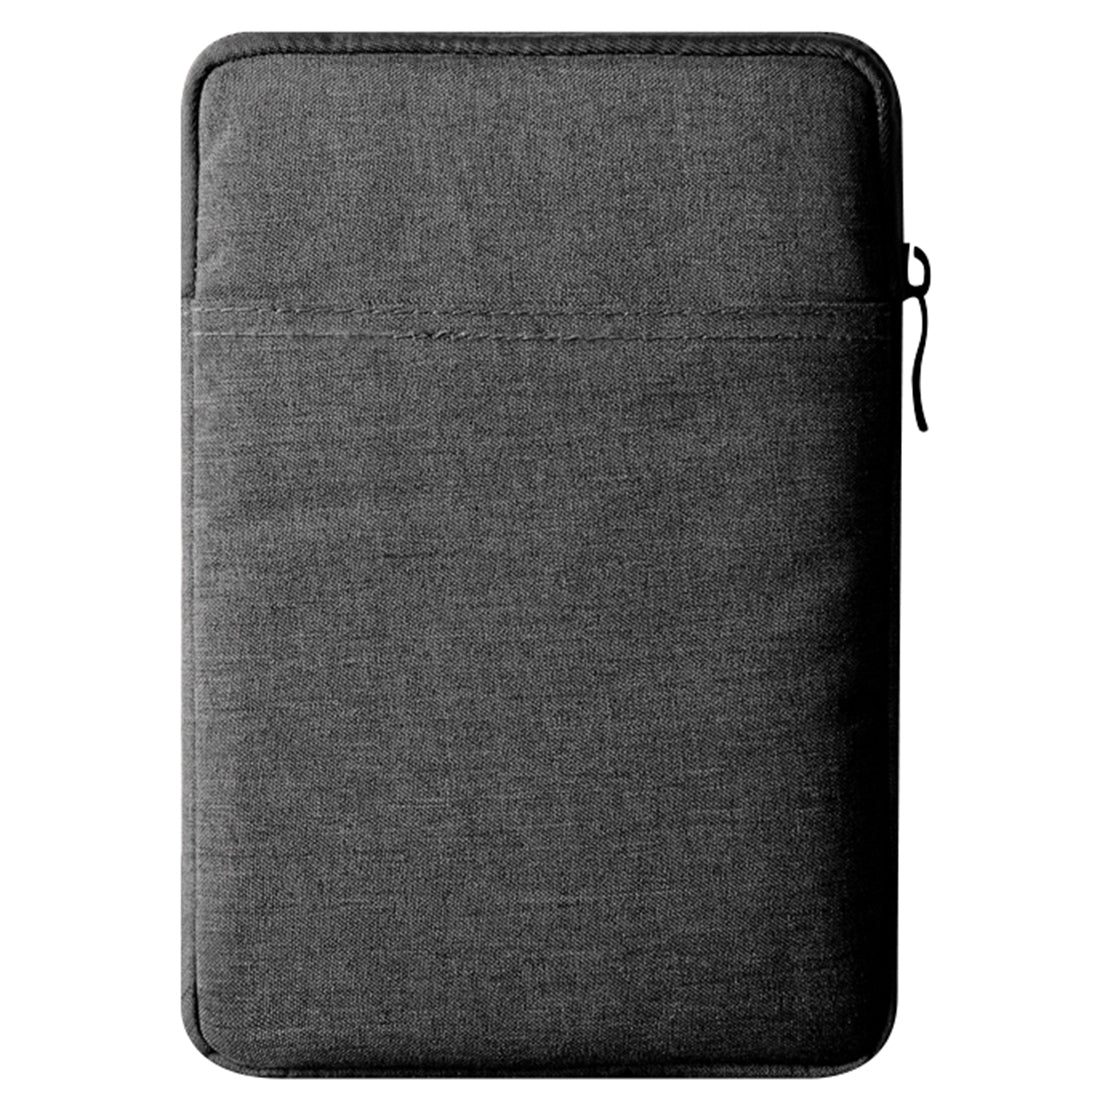 For iPad 10.2 / 9.7 inch Universal Shockproof and Drop-resistant Tablet Storage Bag(Dark Grey)